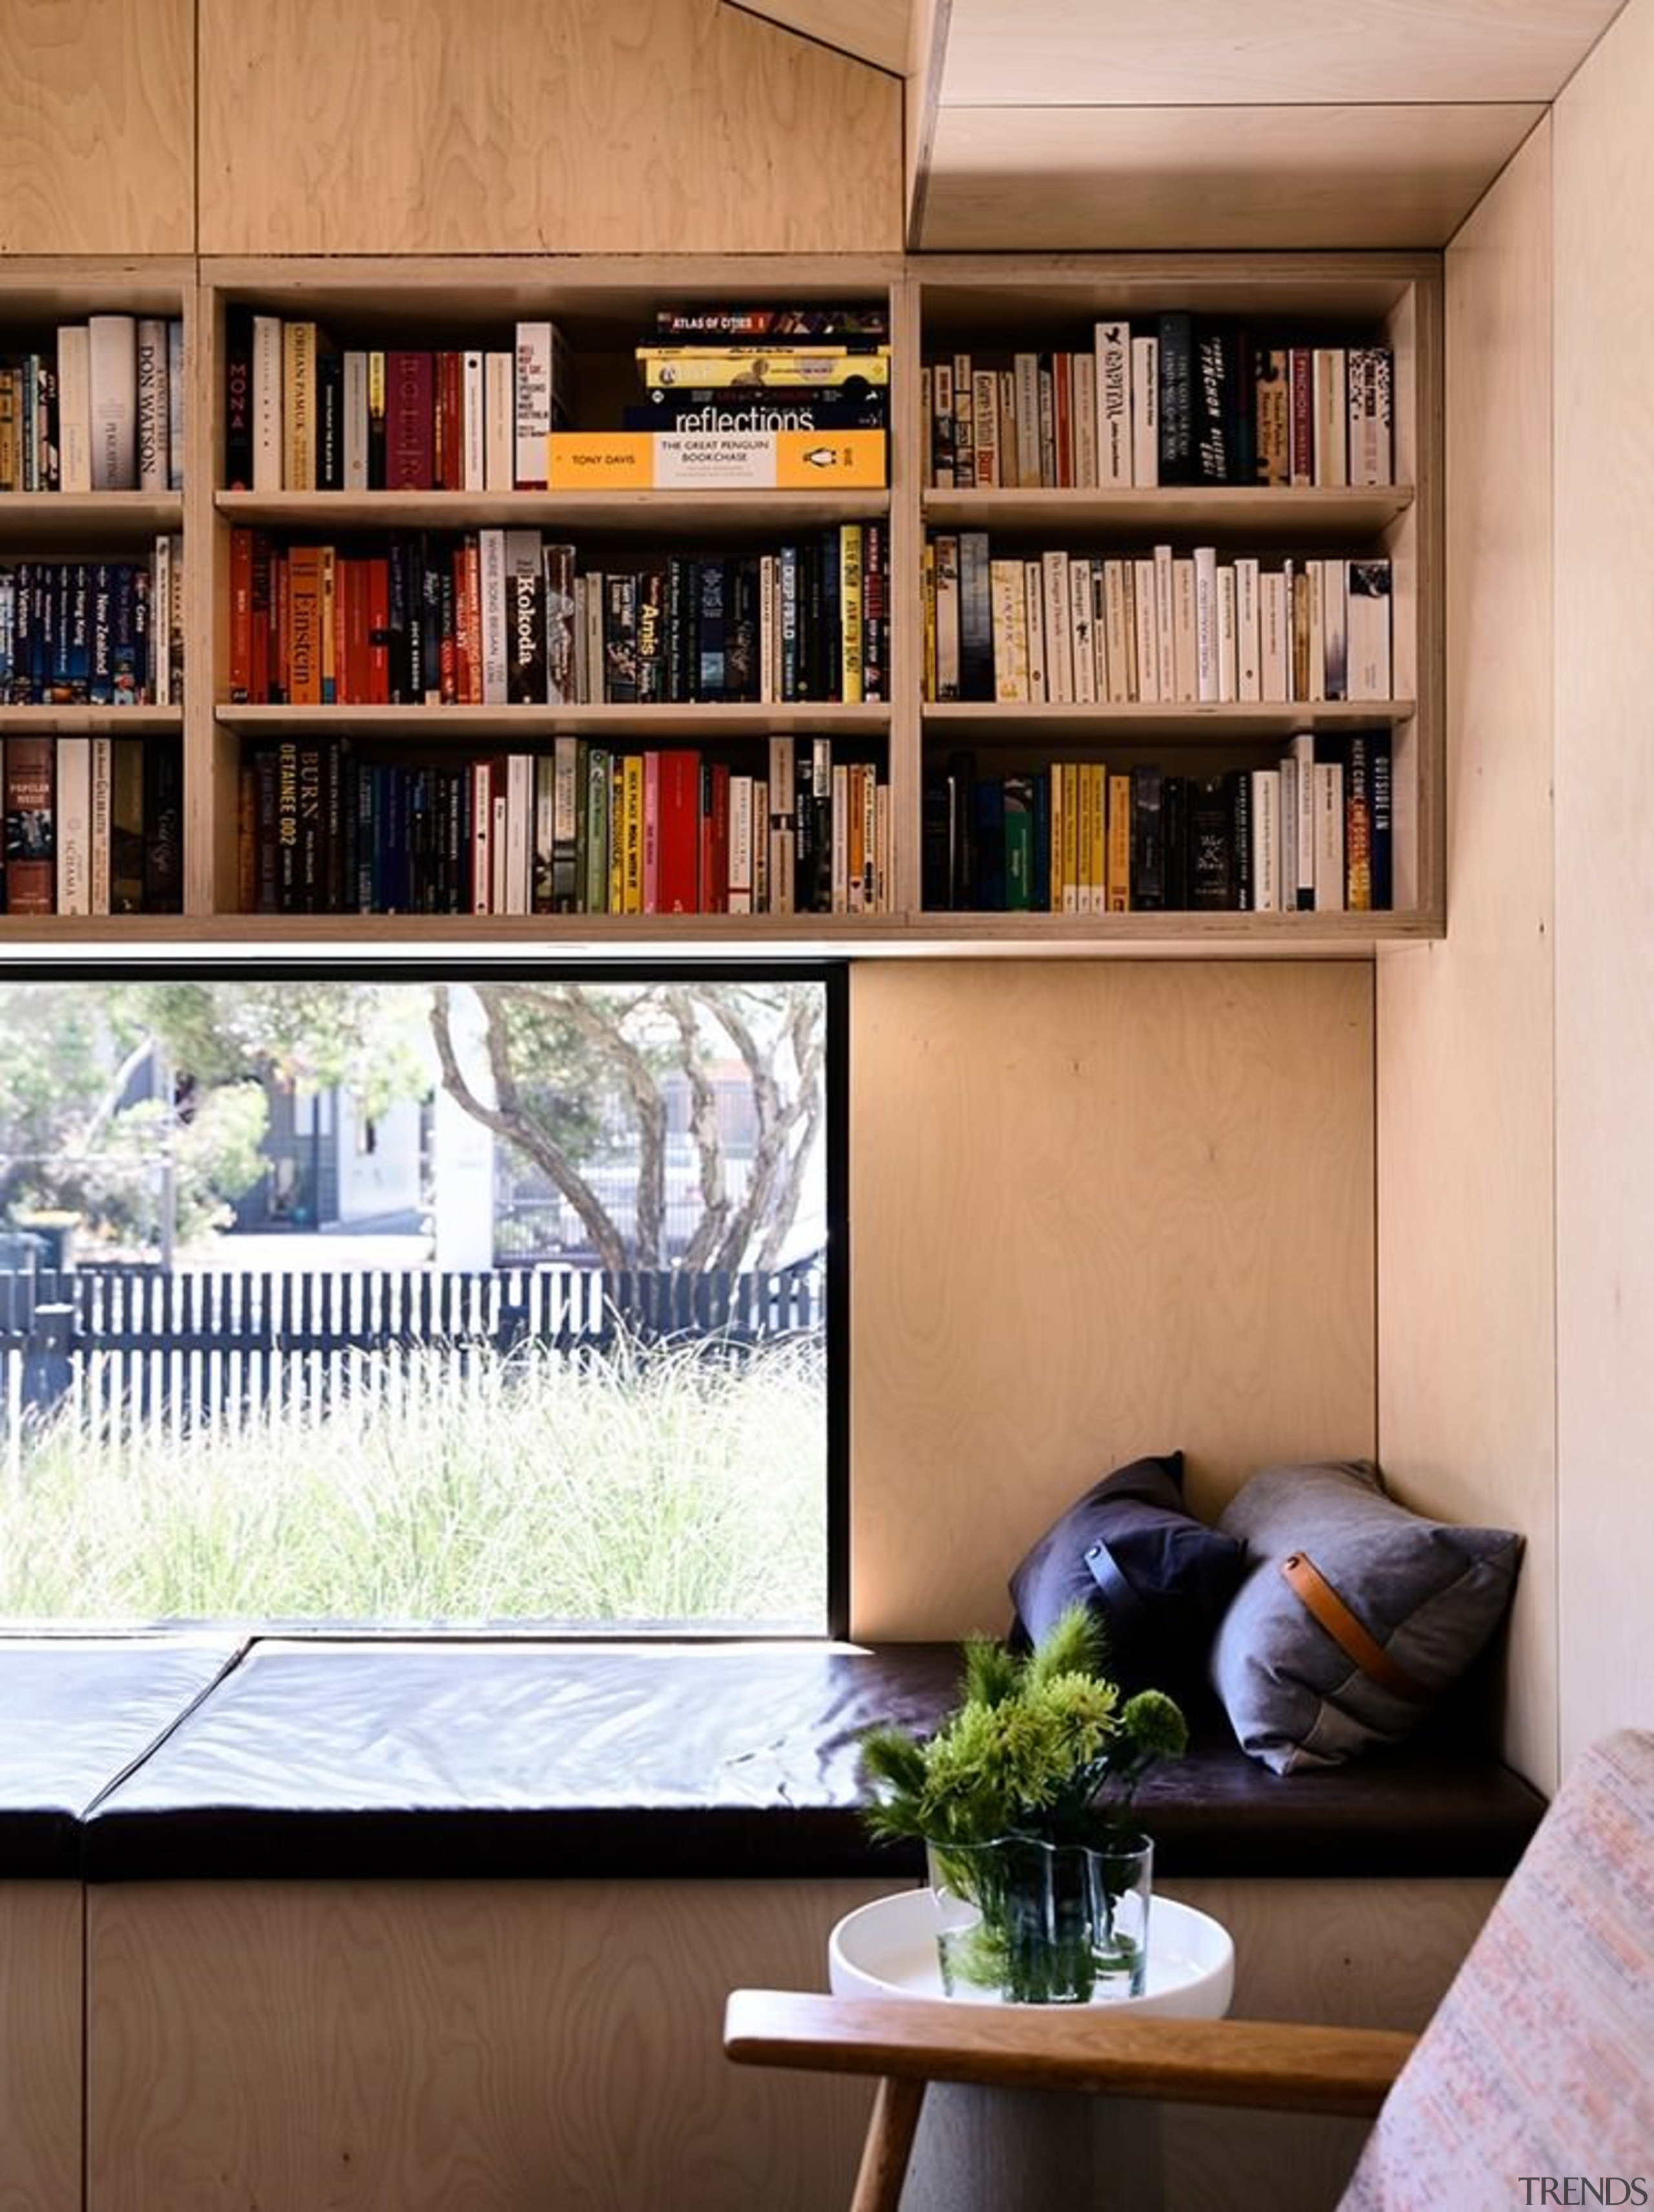 This bookshelf is compact and packed in above bookcase, furniture, home, interior design, living room, shelf, shelving